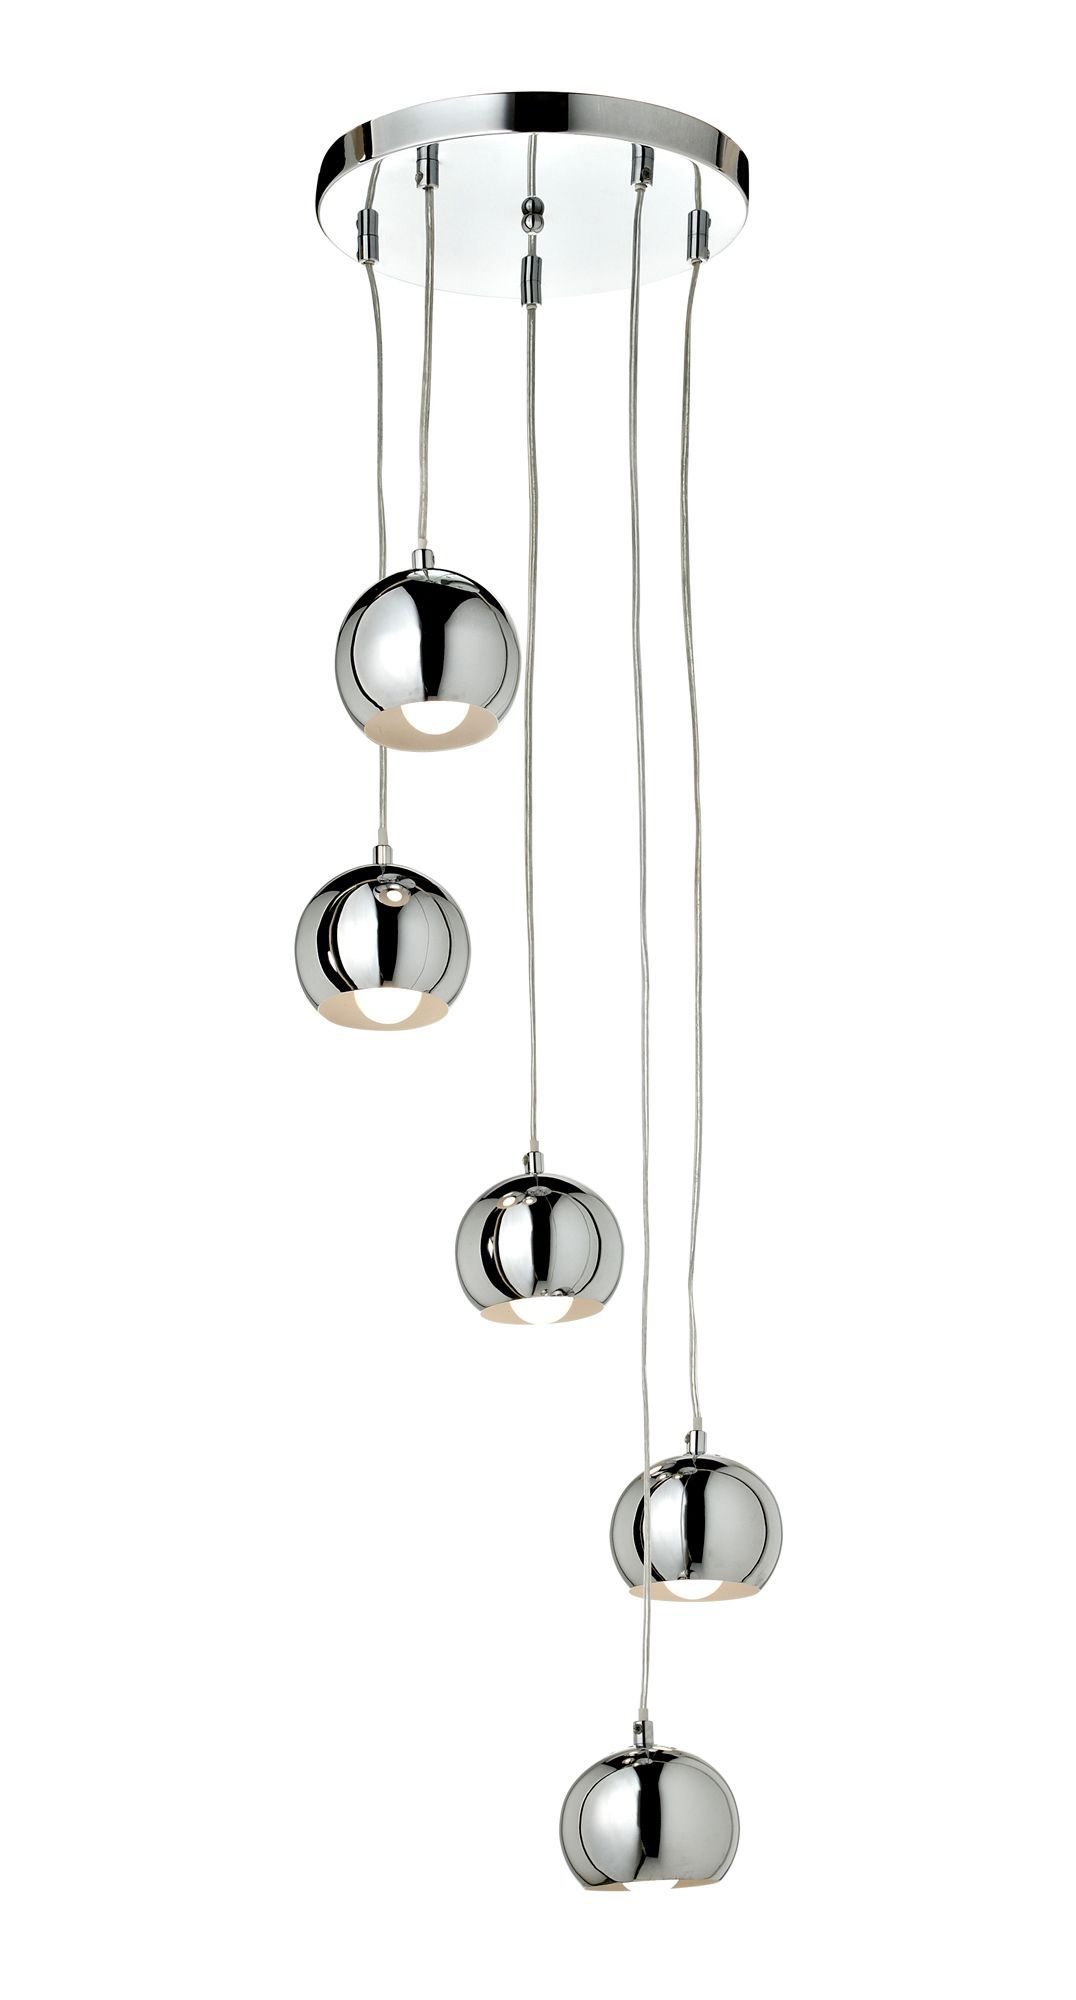 Beautiful Cascade Chrome Effect 5 Lamp Ceiling Light | Departments | DIY at B&Q QF37